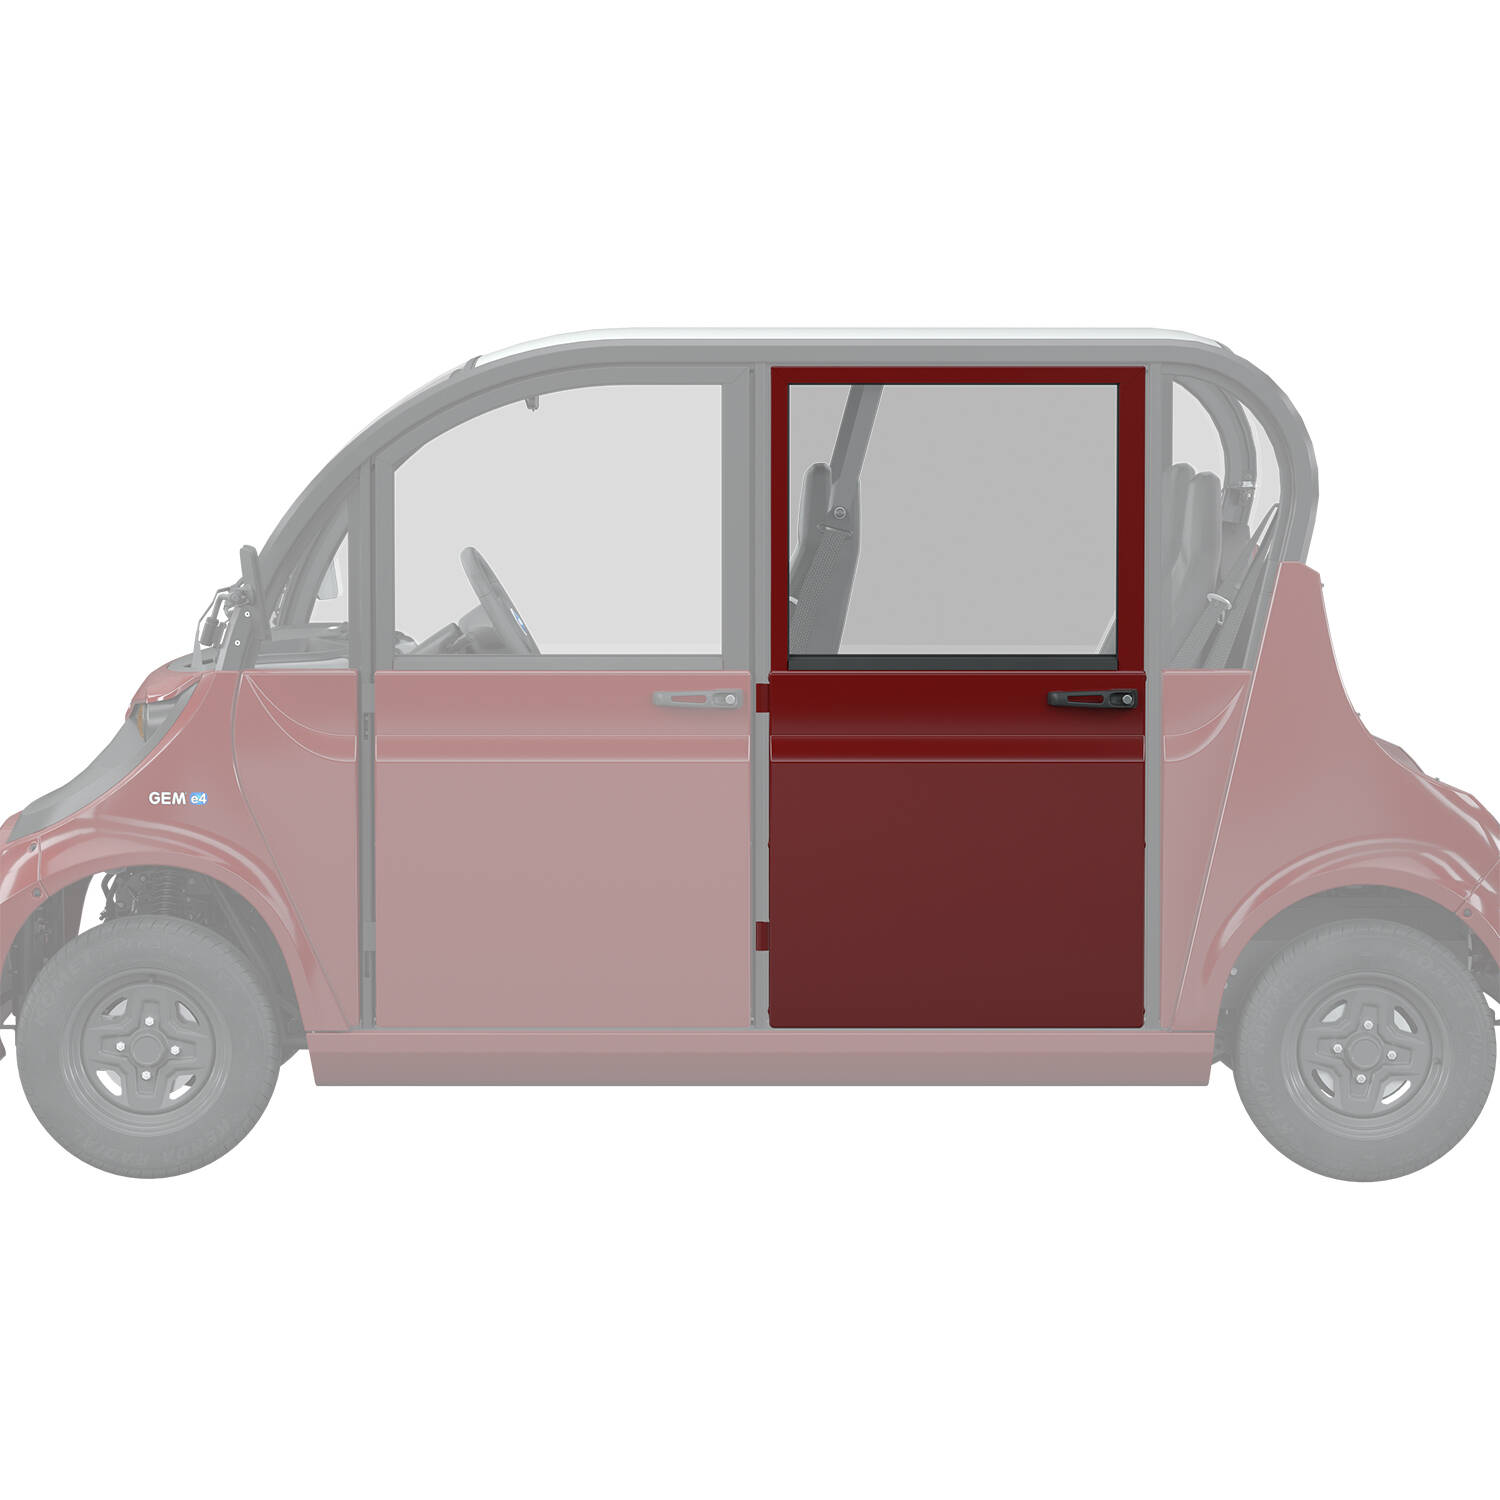 Full Middle/Rear Door Left, Red